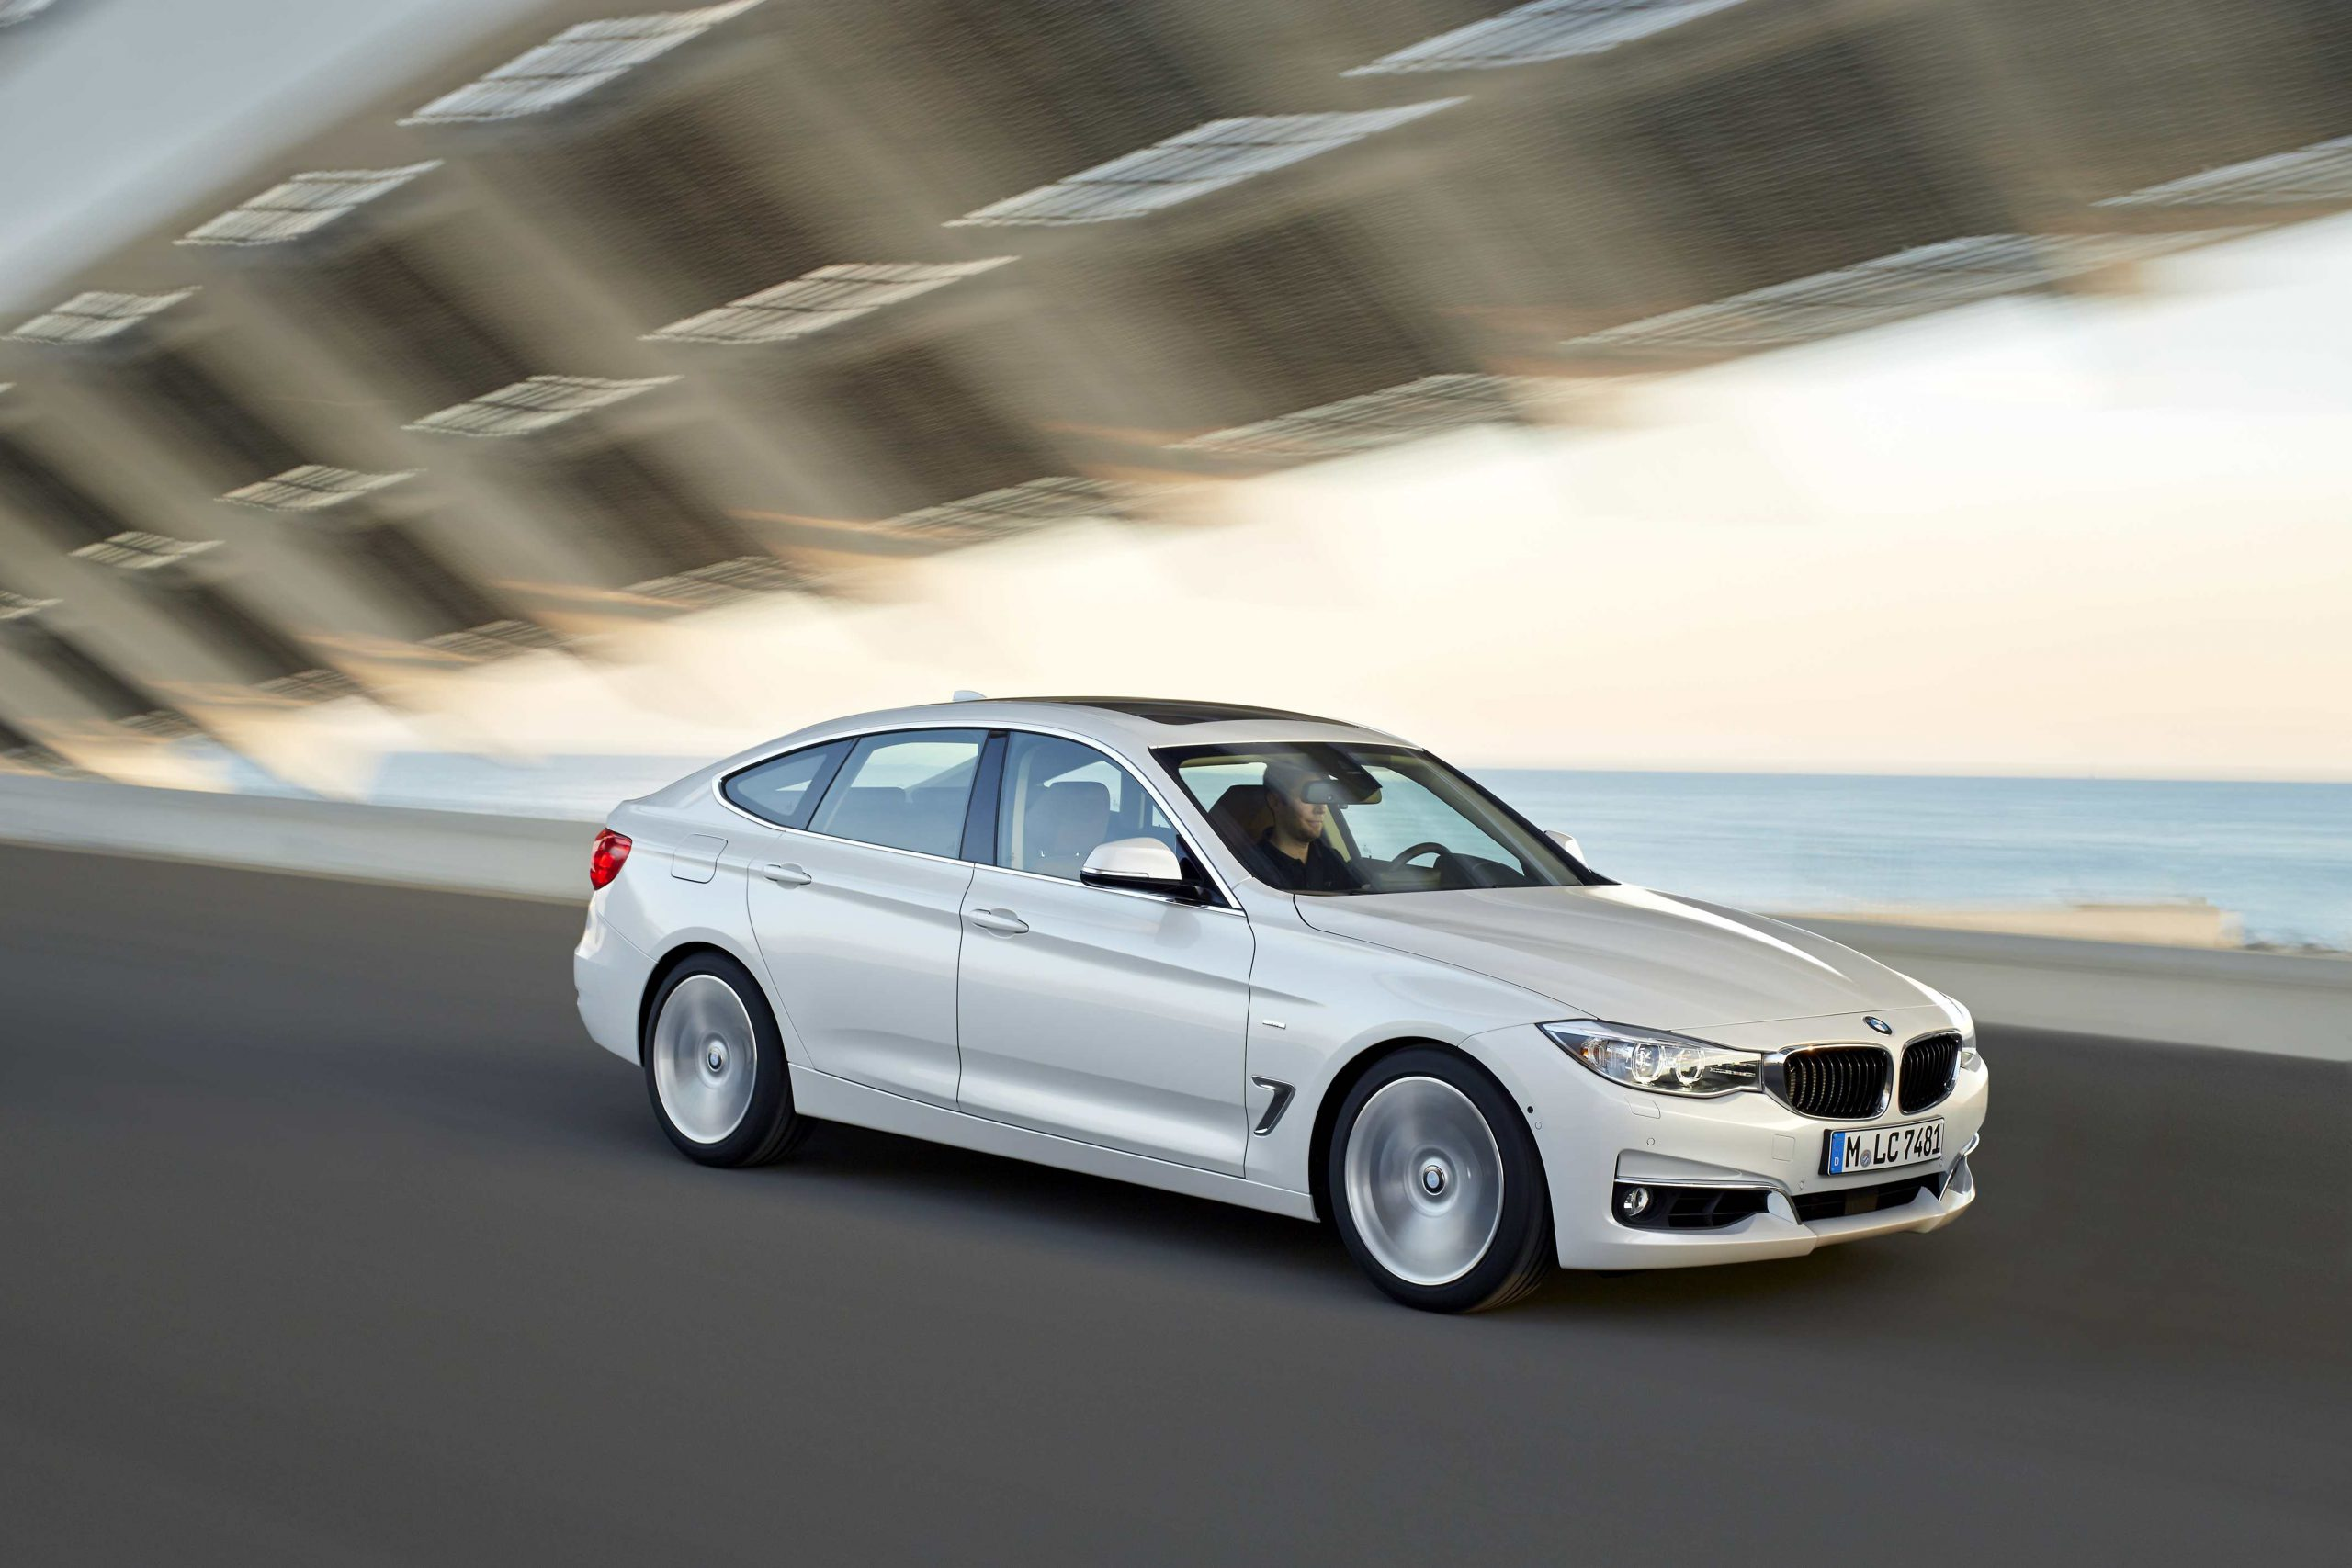 BMW 328i GT (2013): New Car Review – Surf4cars